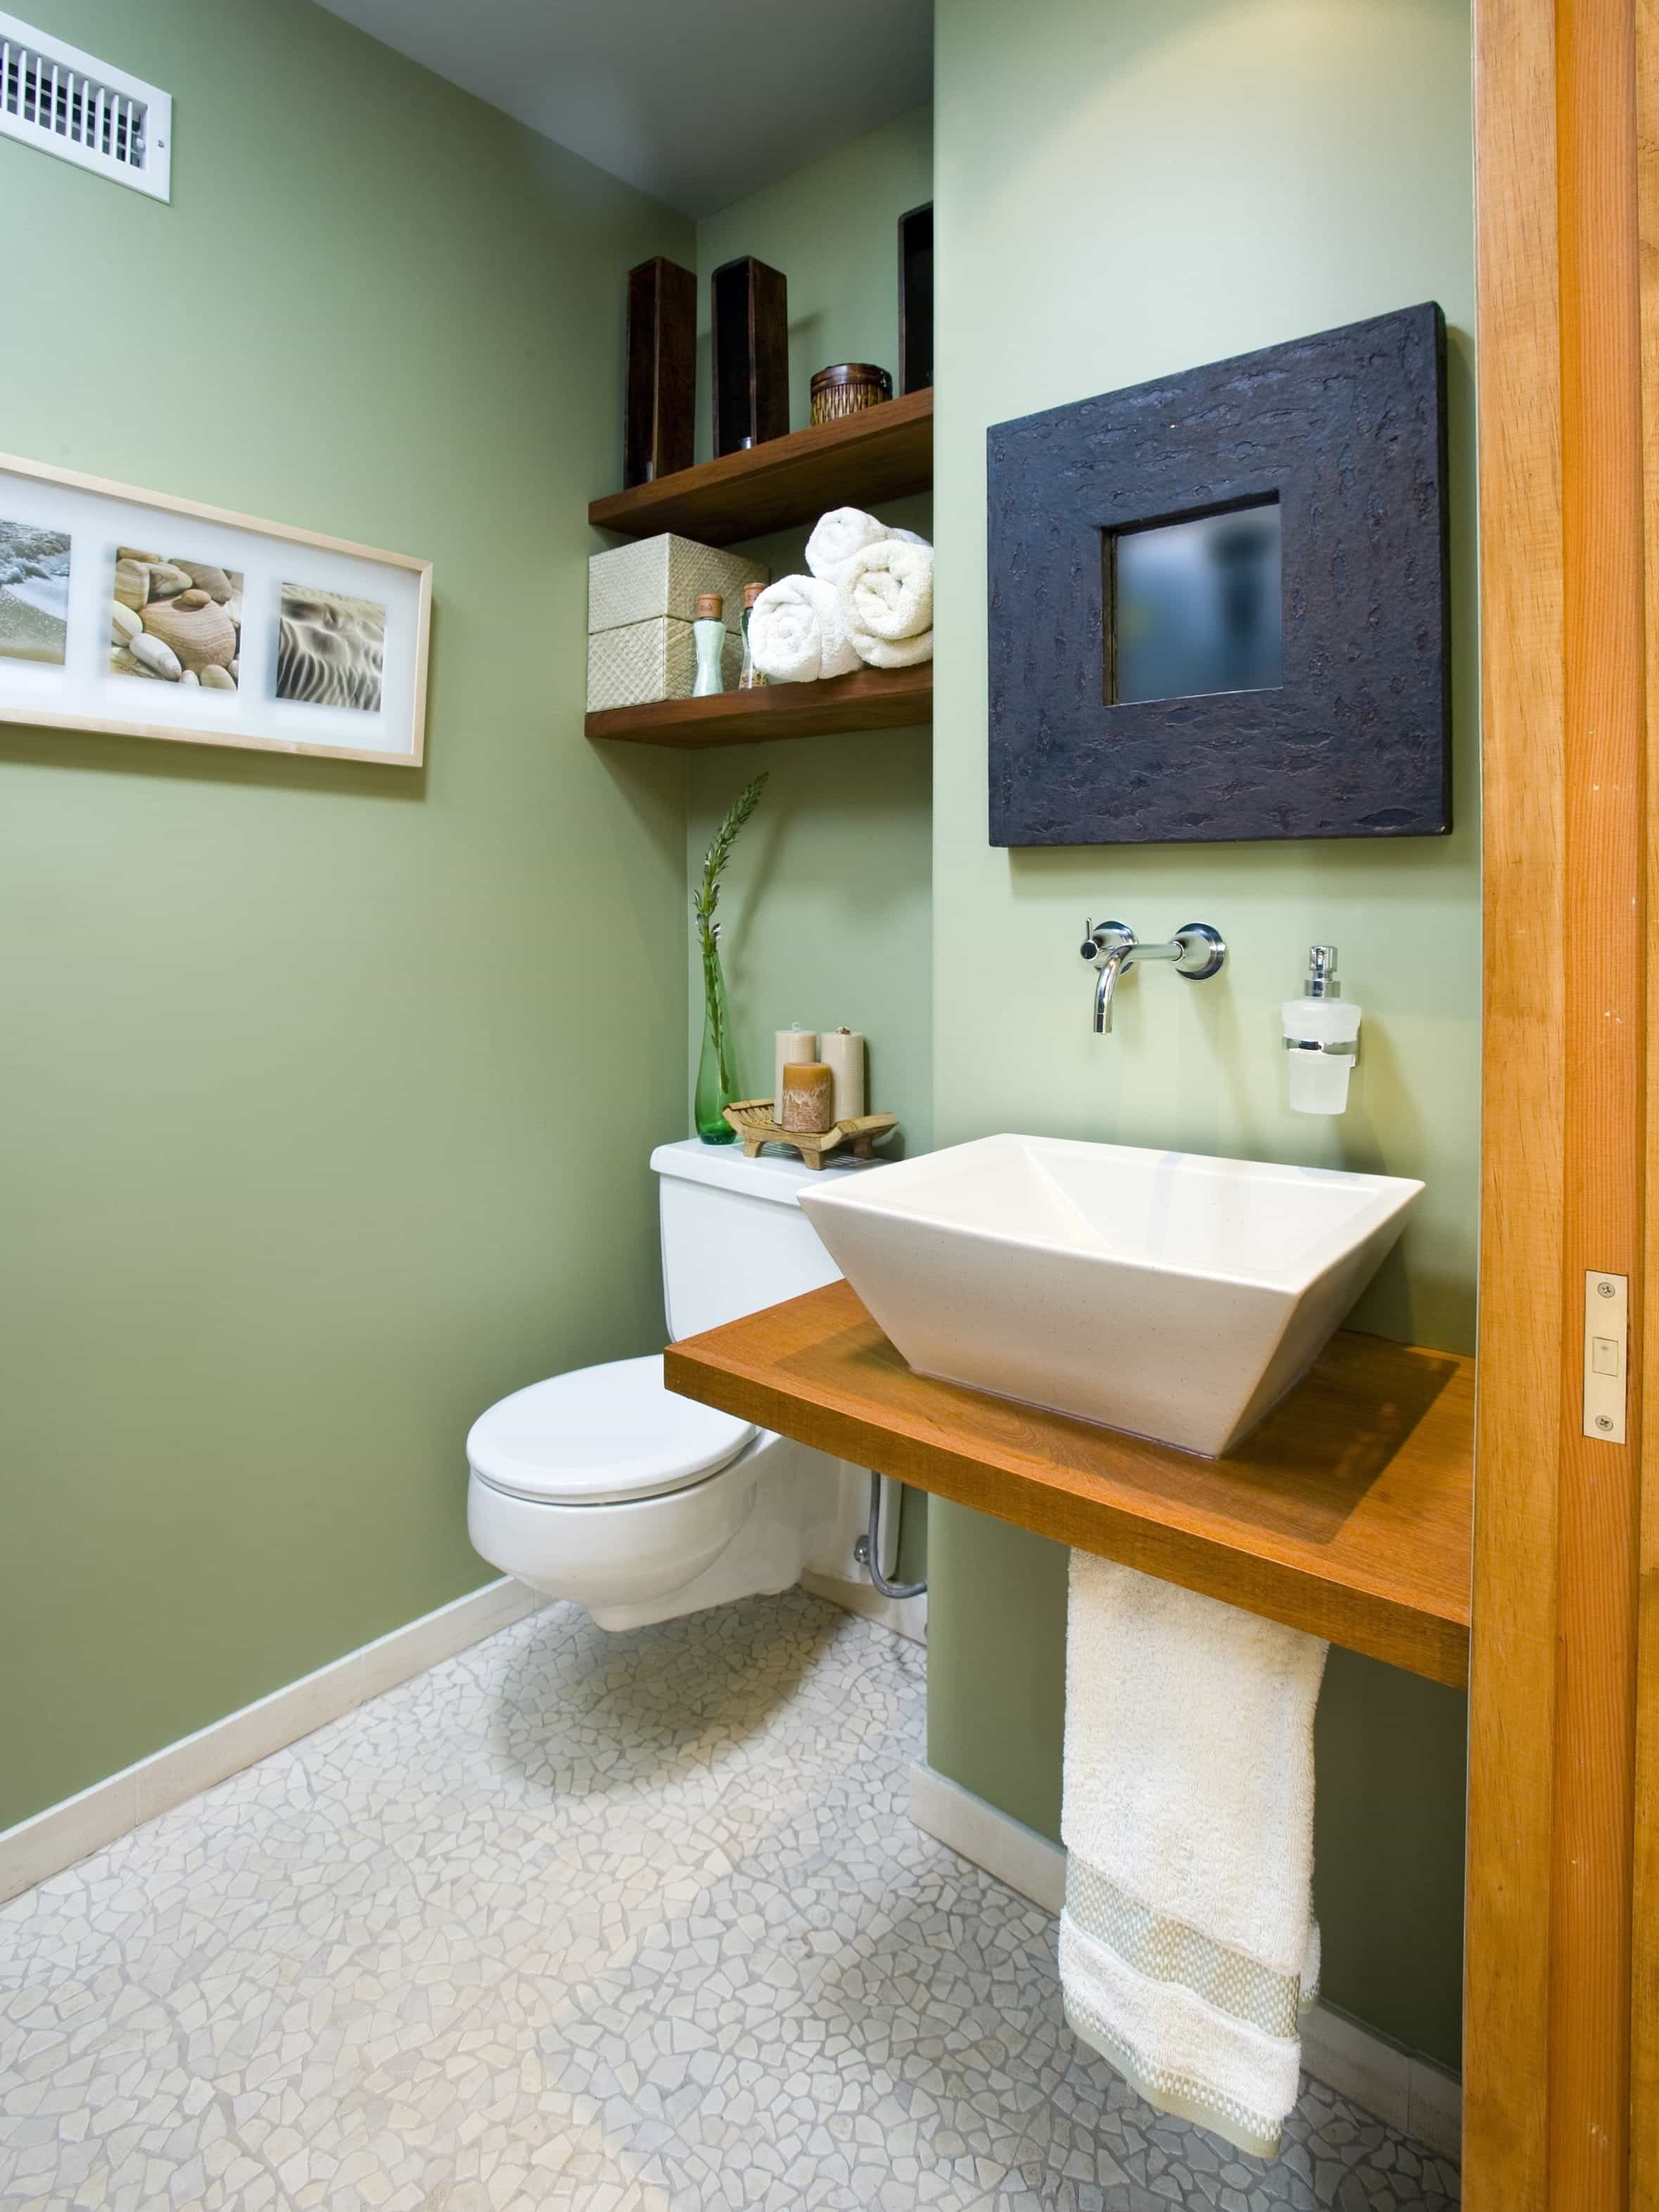 Beauty Sage Green Asian Spa Inspired Bathroom With Mounted Vanity And Toilet (Image 3 of 12)